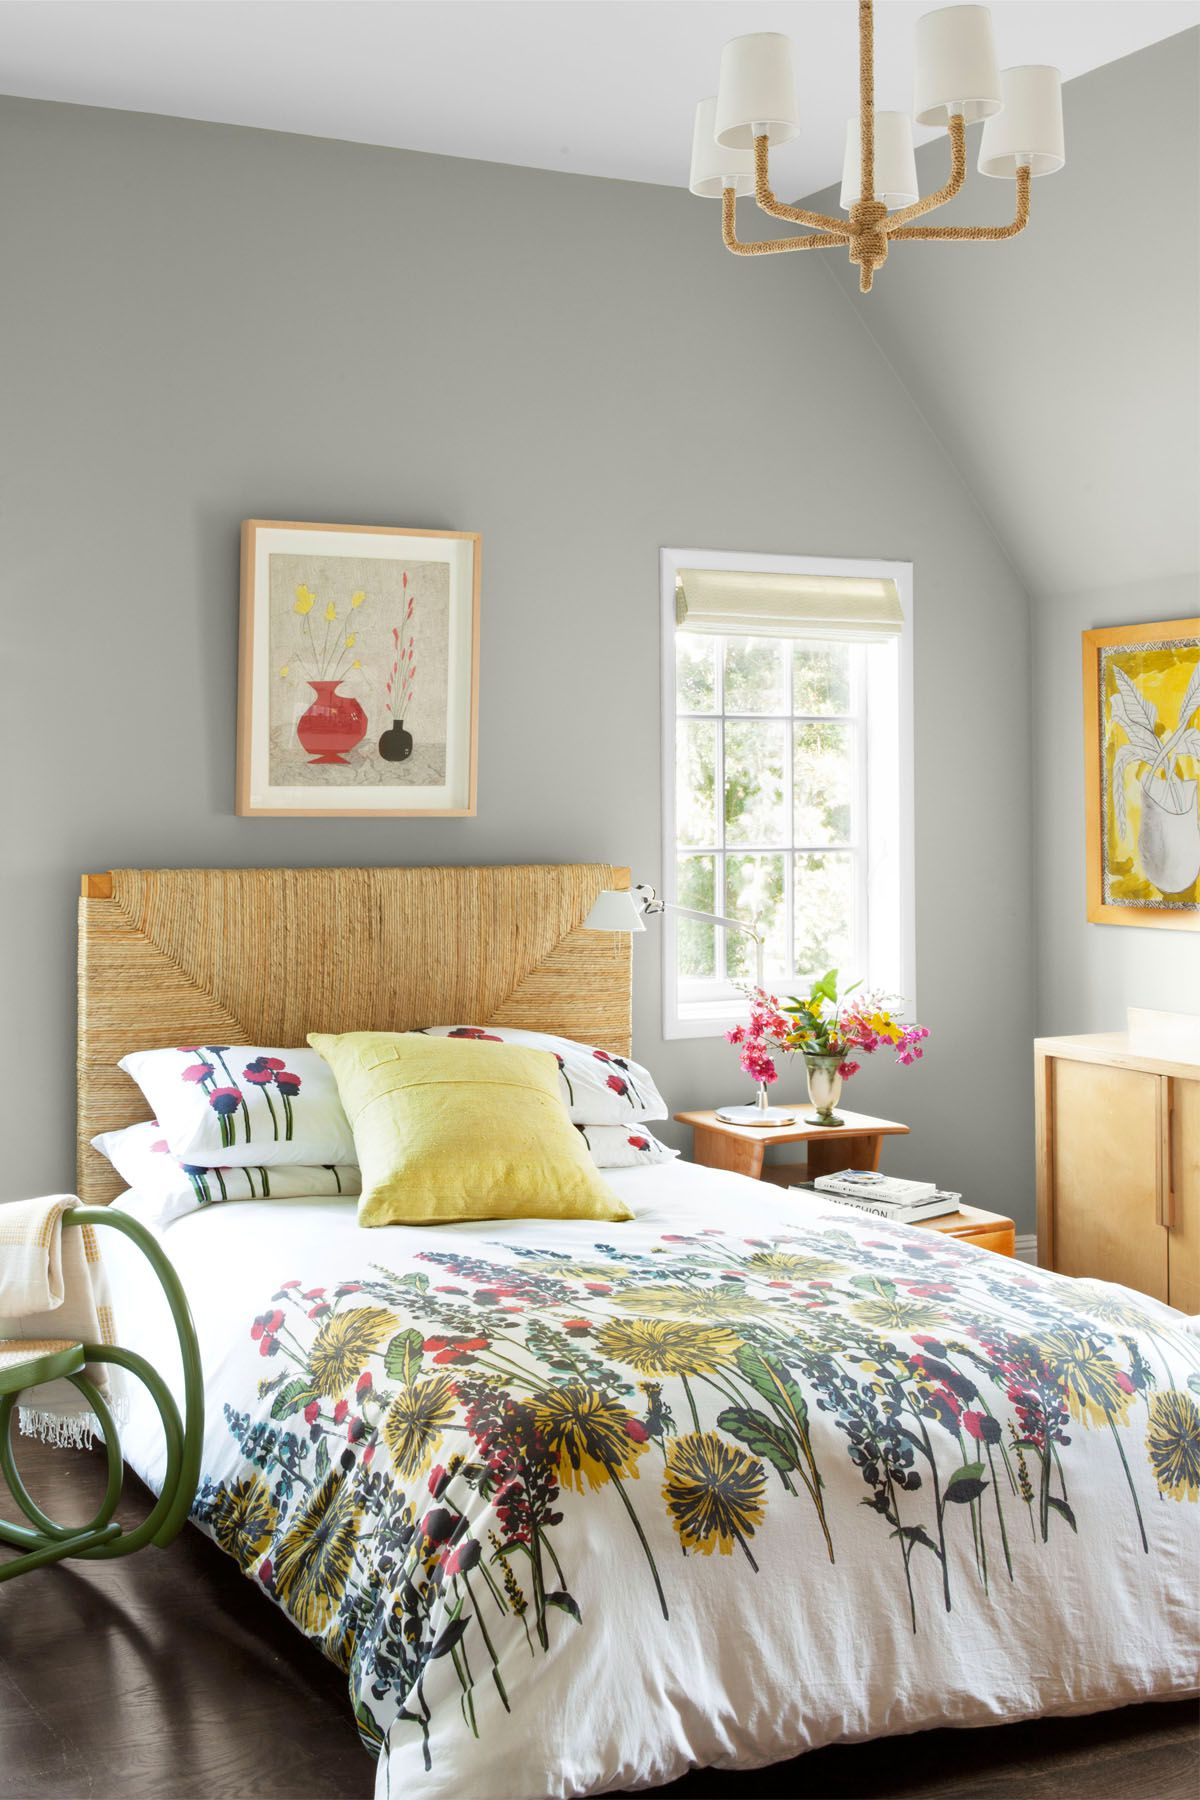 10 Gray Bedroom Decorating Ideas - Grey Paint Colors for Bedrooms